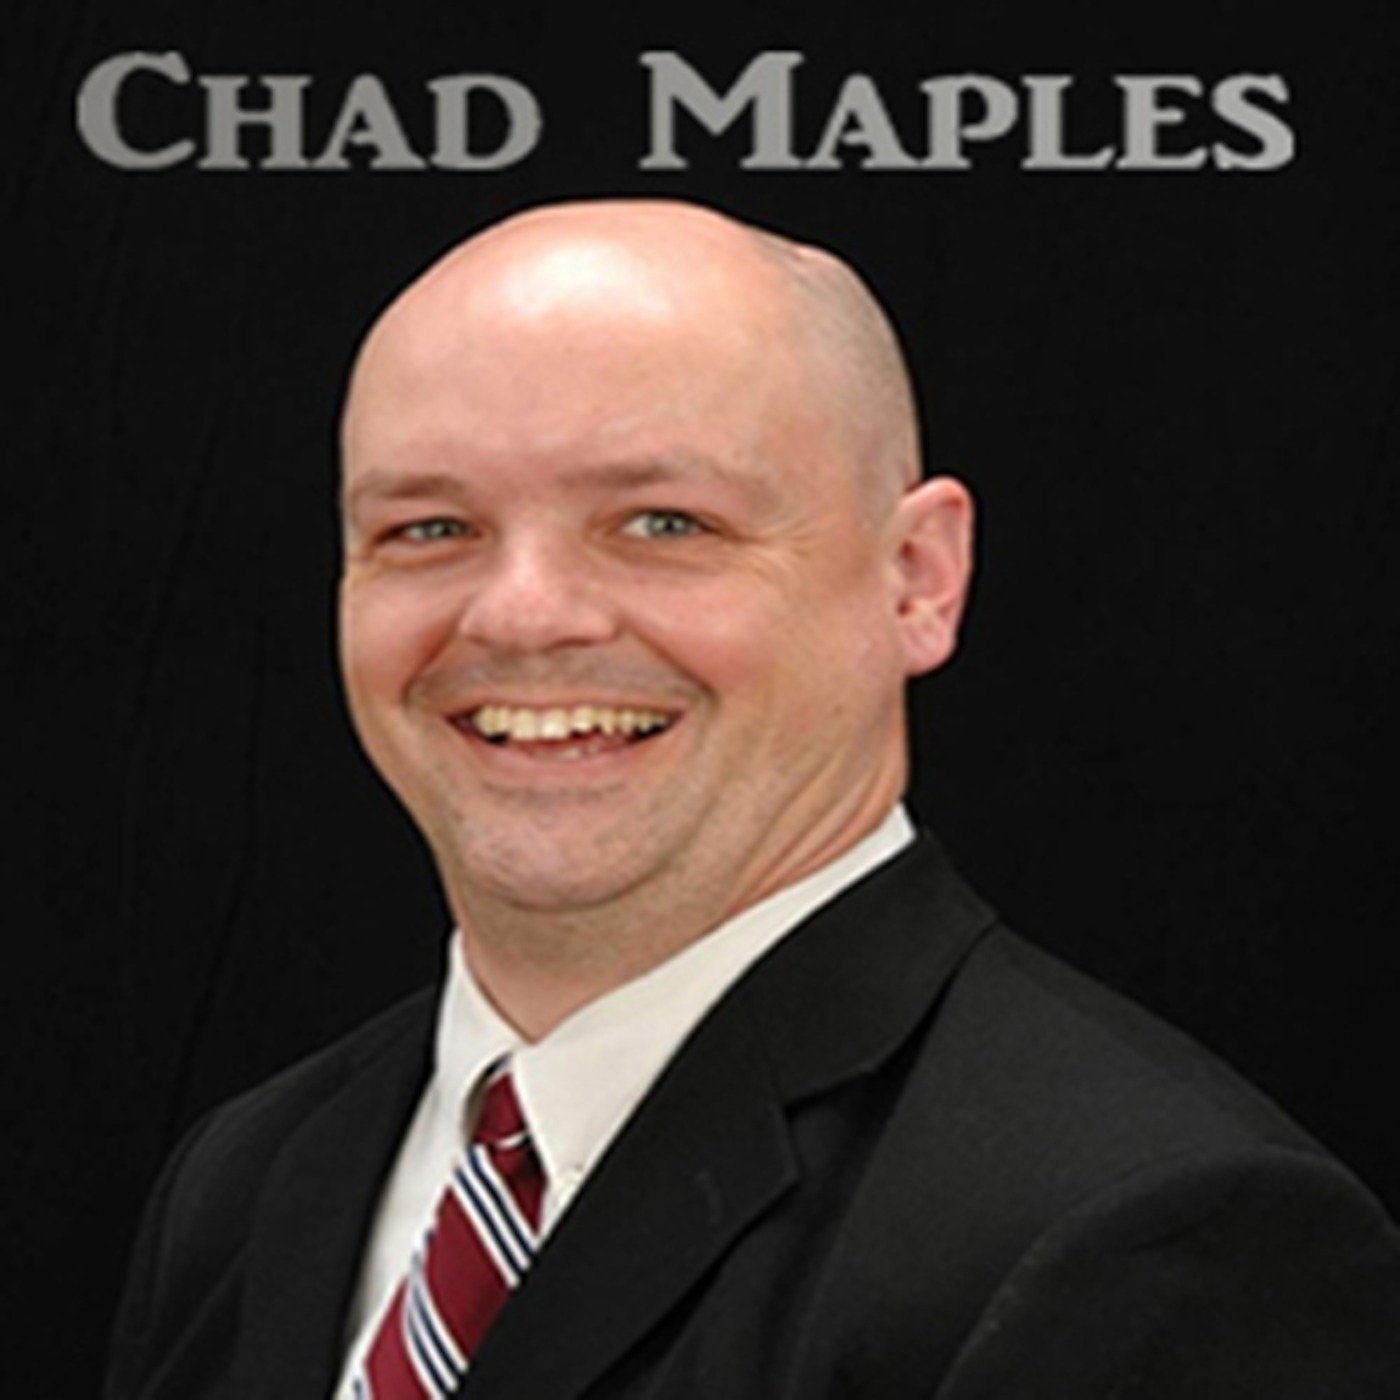 Chad Maples' Podcast